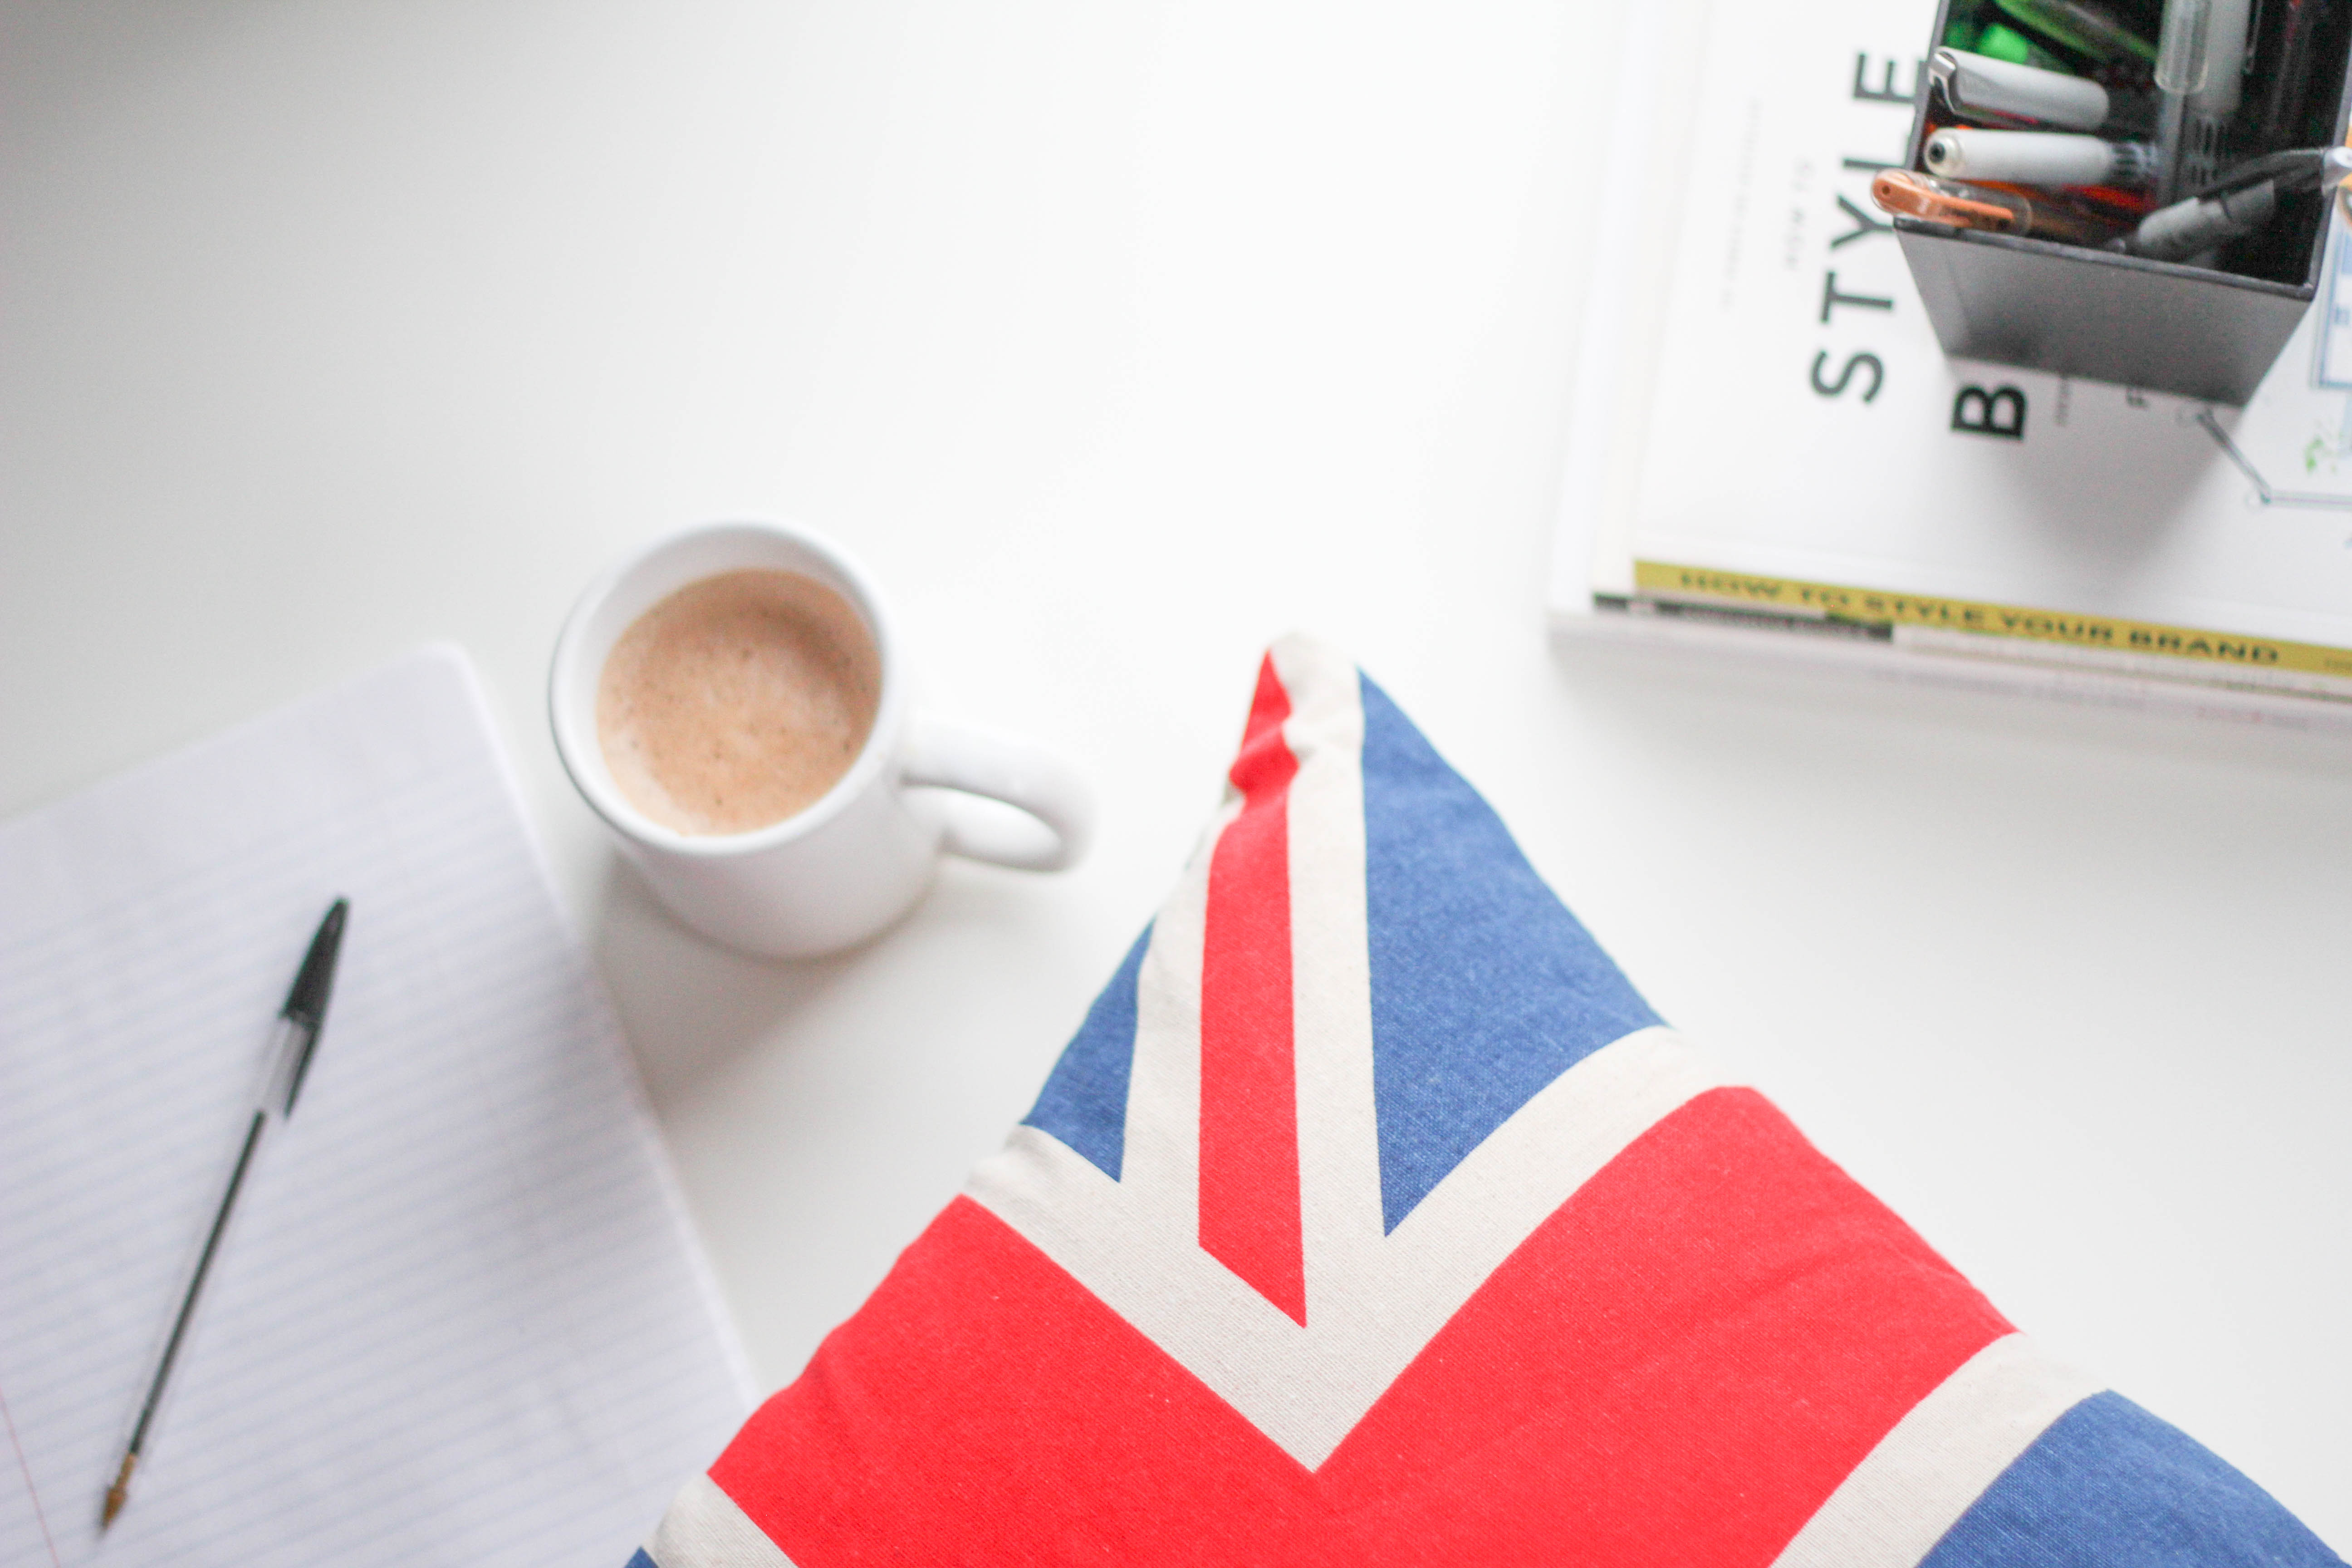 A British native proofreader offering on-screen proofreading for all business, educational, and personal requirements